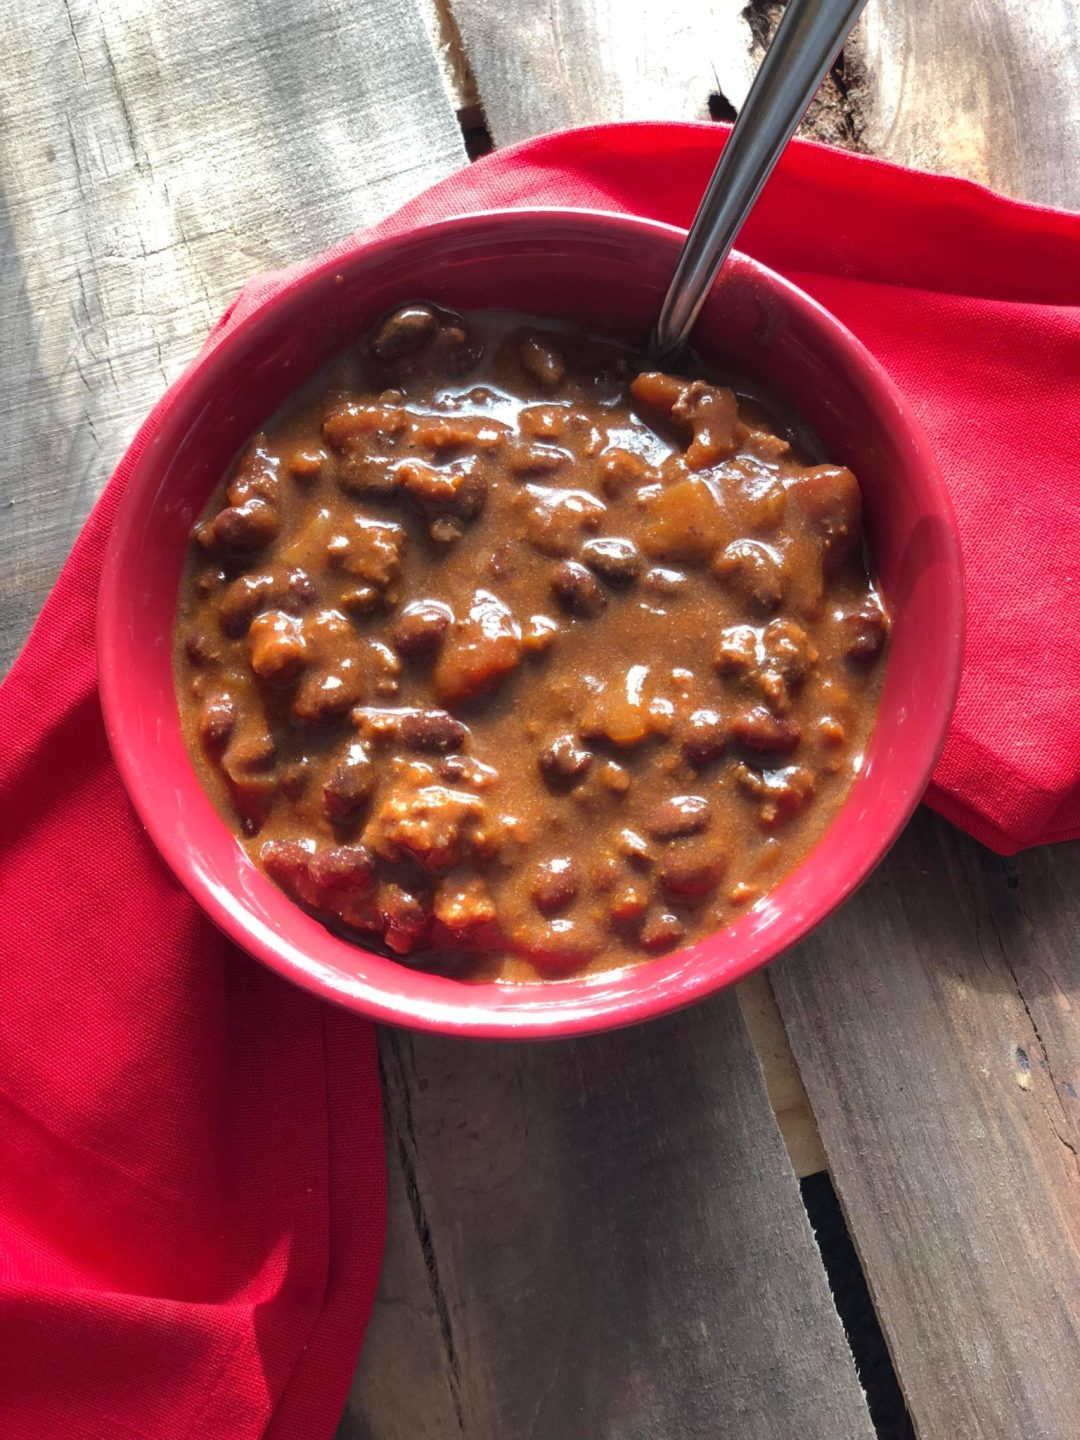 Wintry Day Chili Recipe